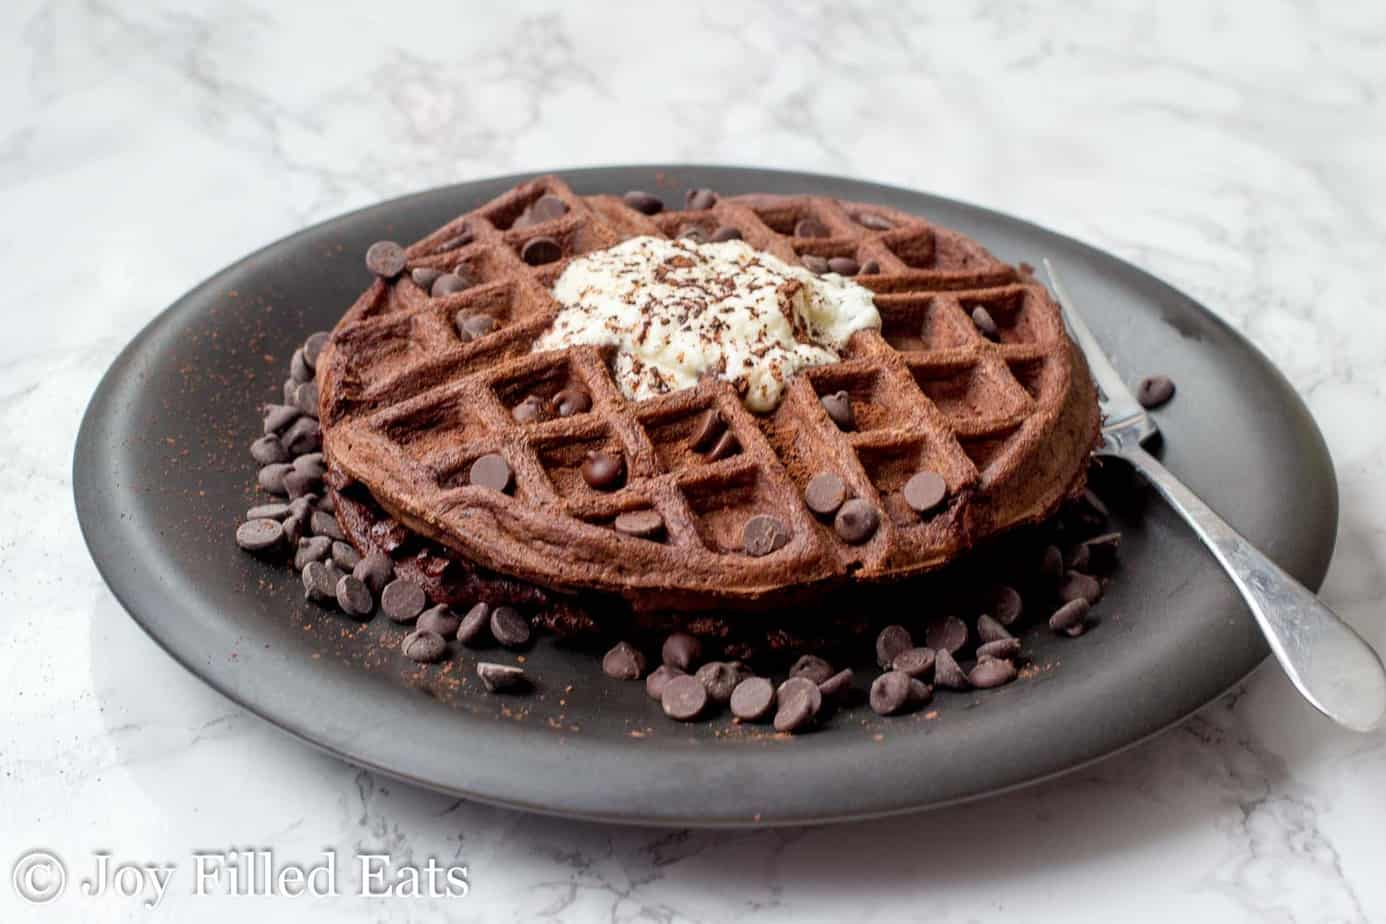 chocolate chocolate chip waffle surrounded by chocolate chips and topped with whipped cream on a black plate